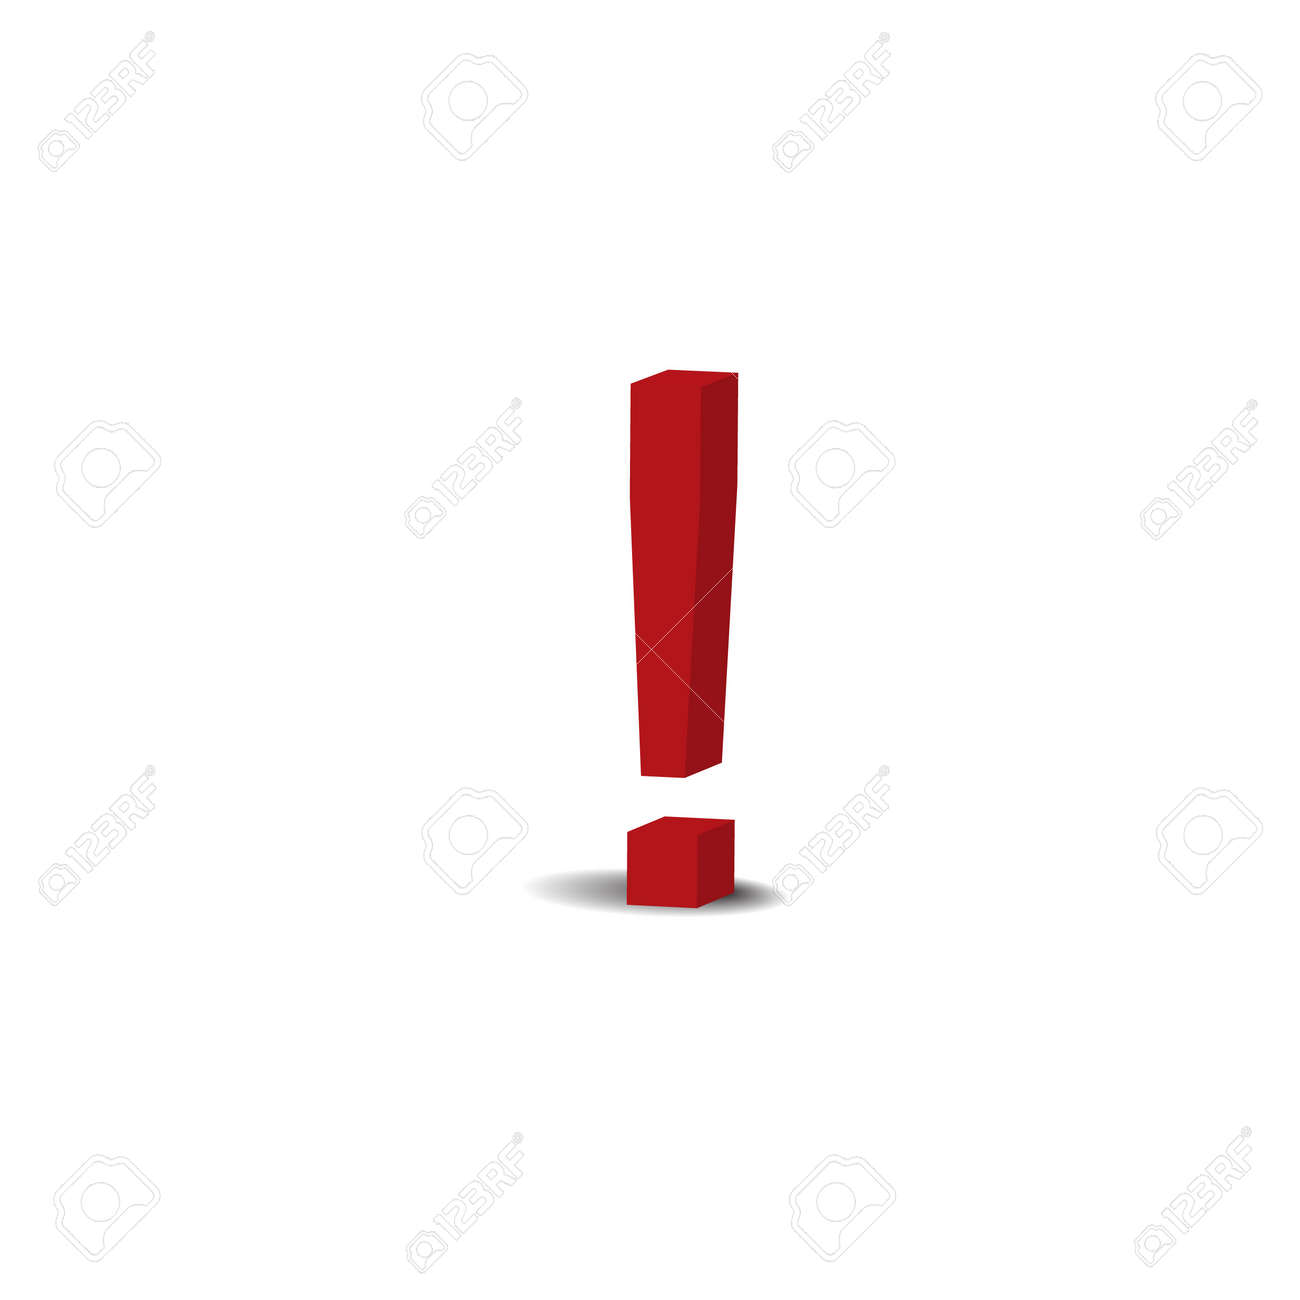 red exclamation sign Stock Vector - 8535455